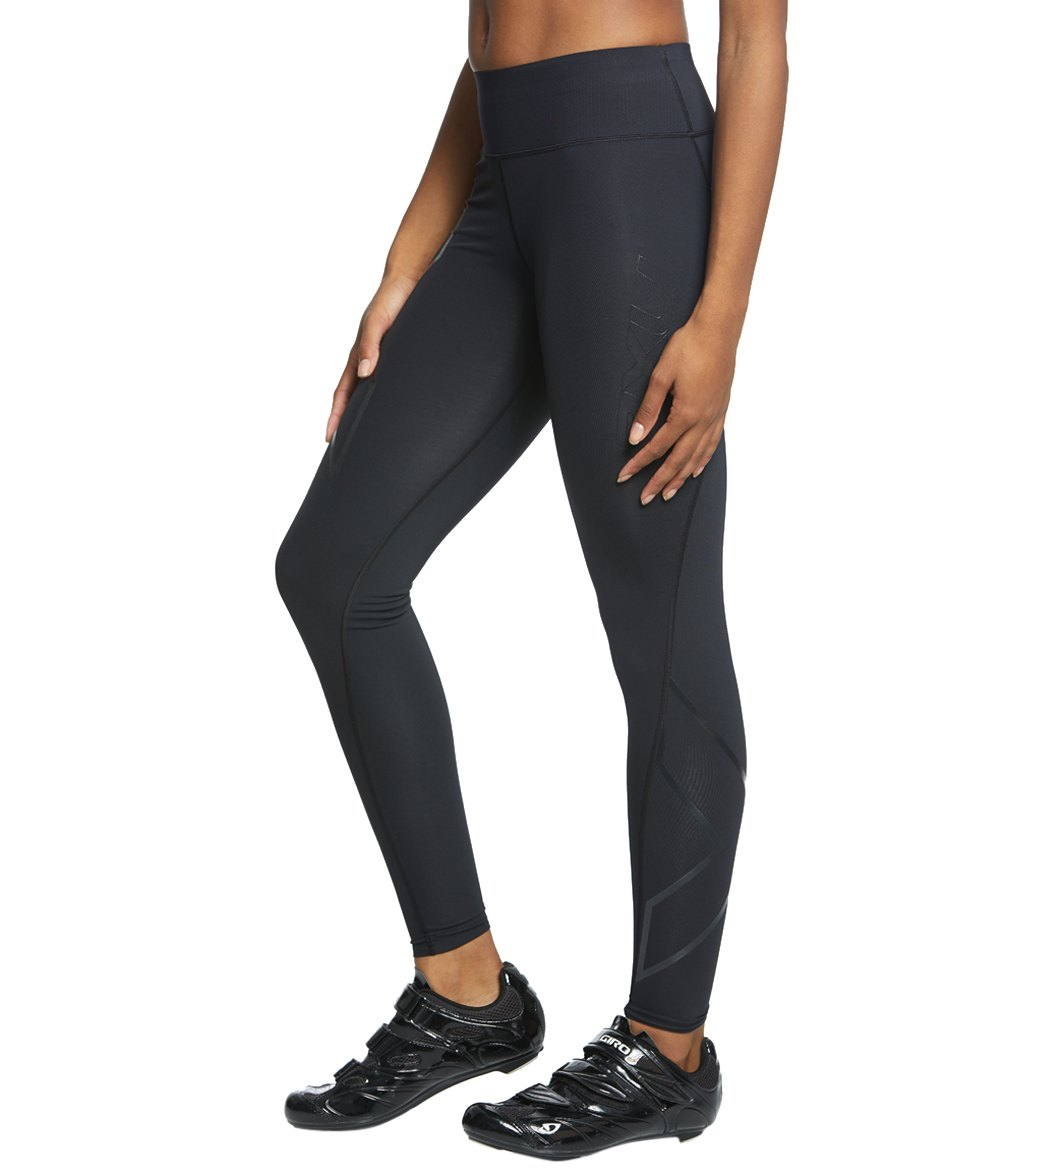 98999b626b272 2XU Women's Bonded Mid-Rise Tights at SwimOutlet.com - Free Shipping